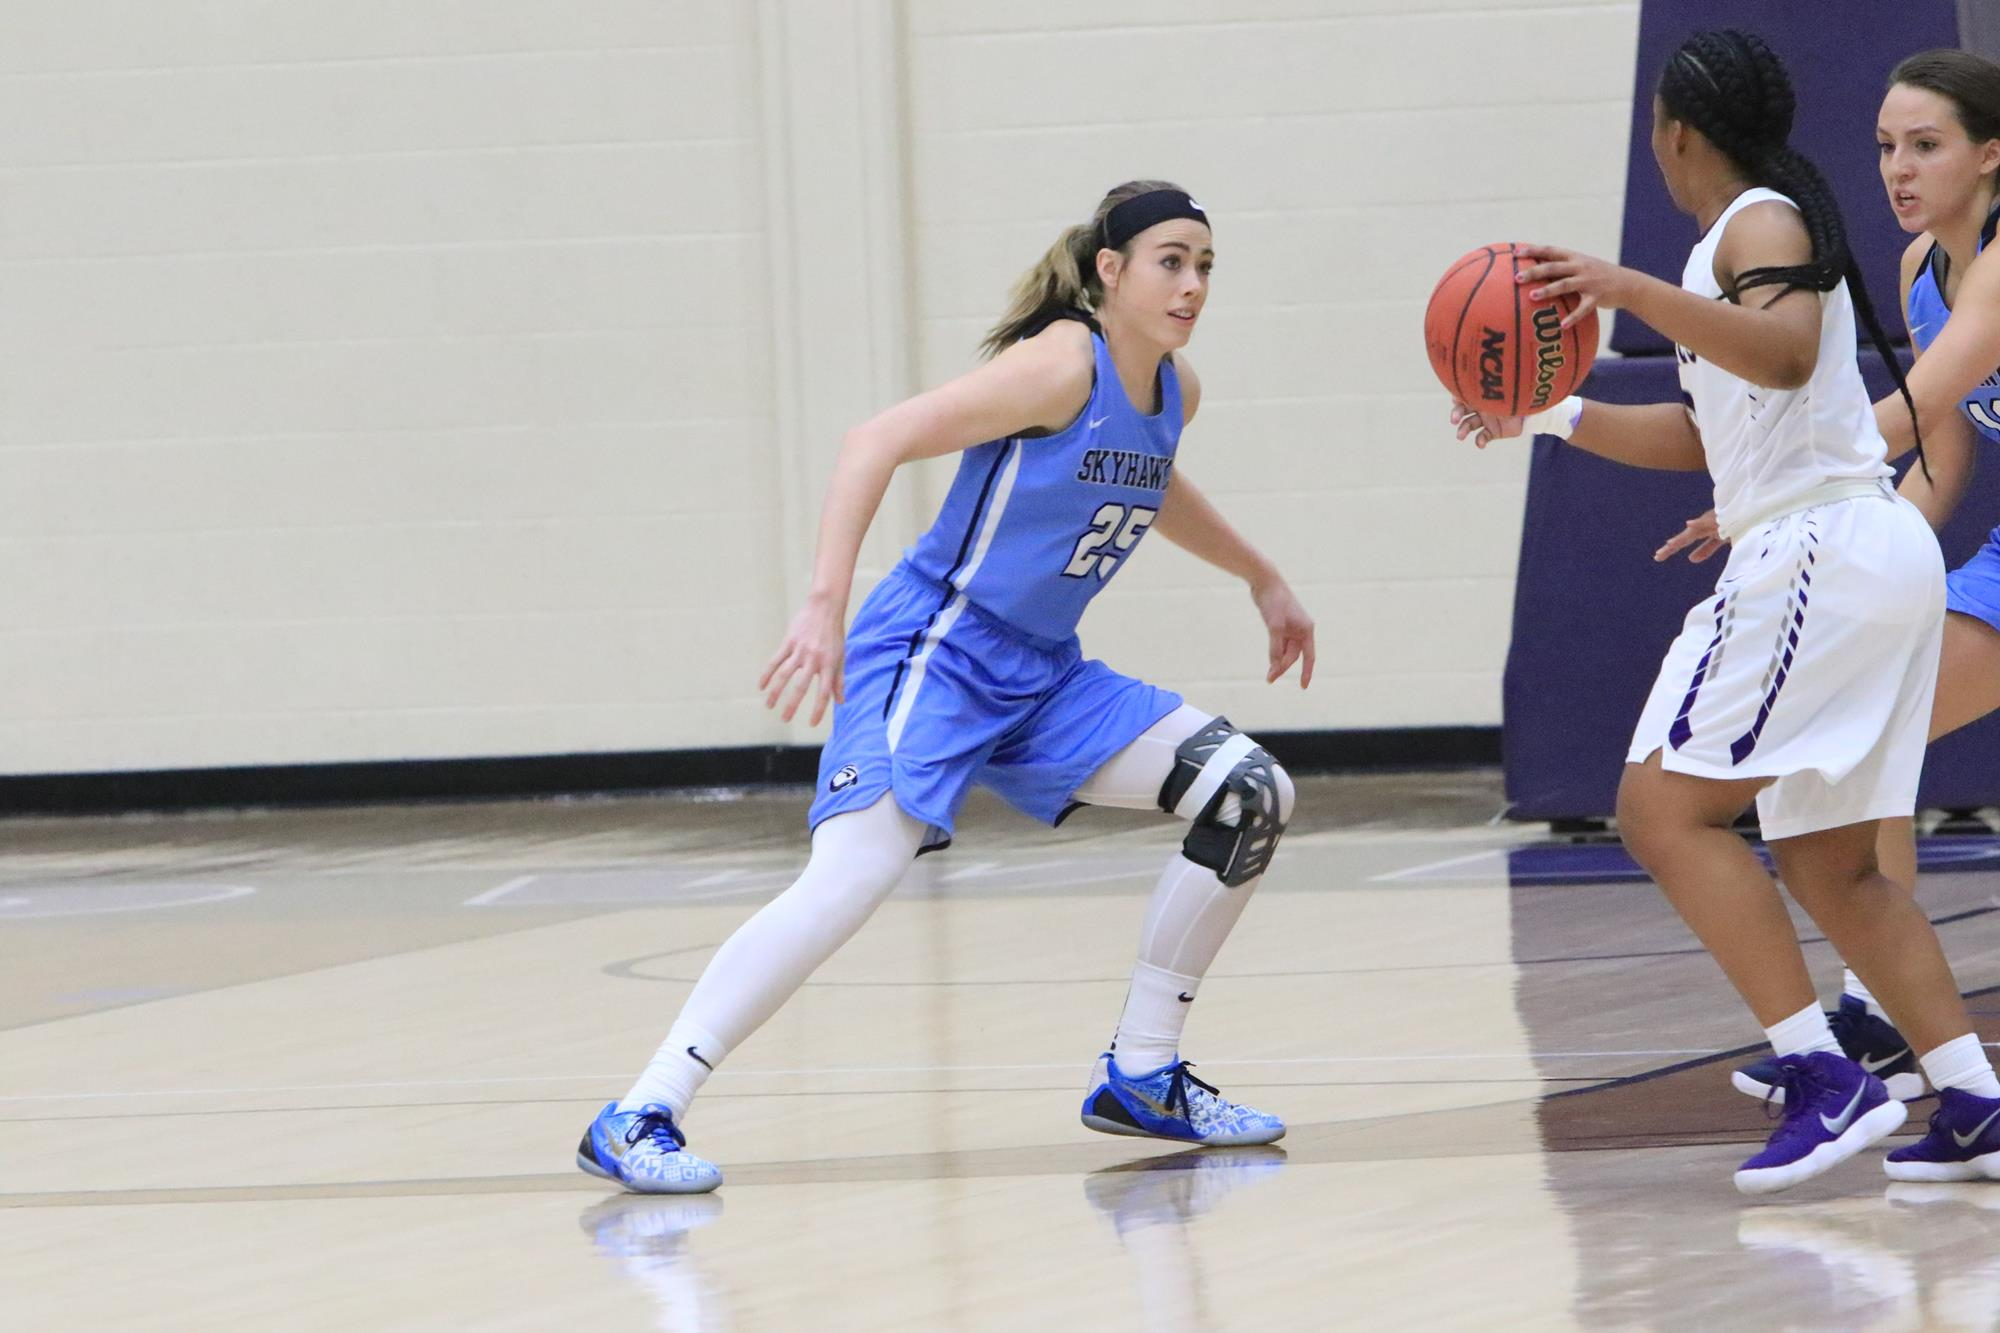 Women's Basketball Falls at Colorado Mesa, 66-52 - Fort ...